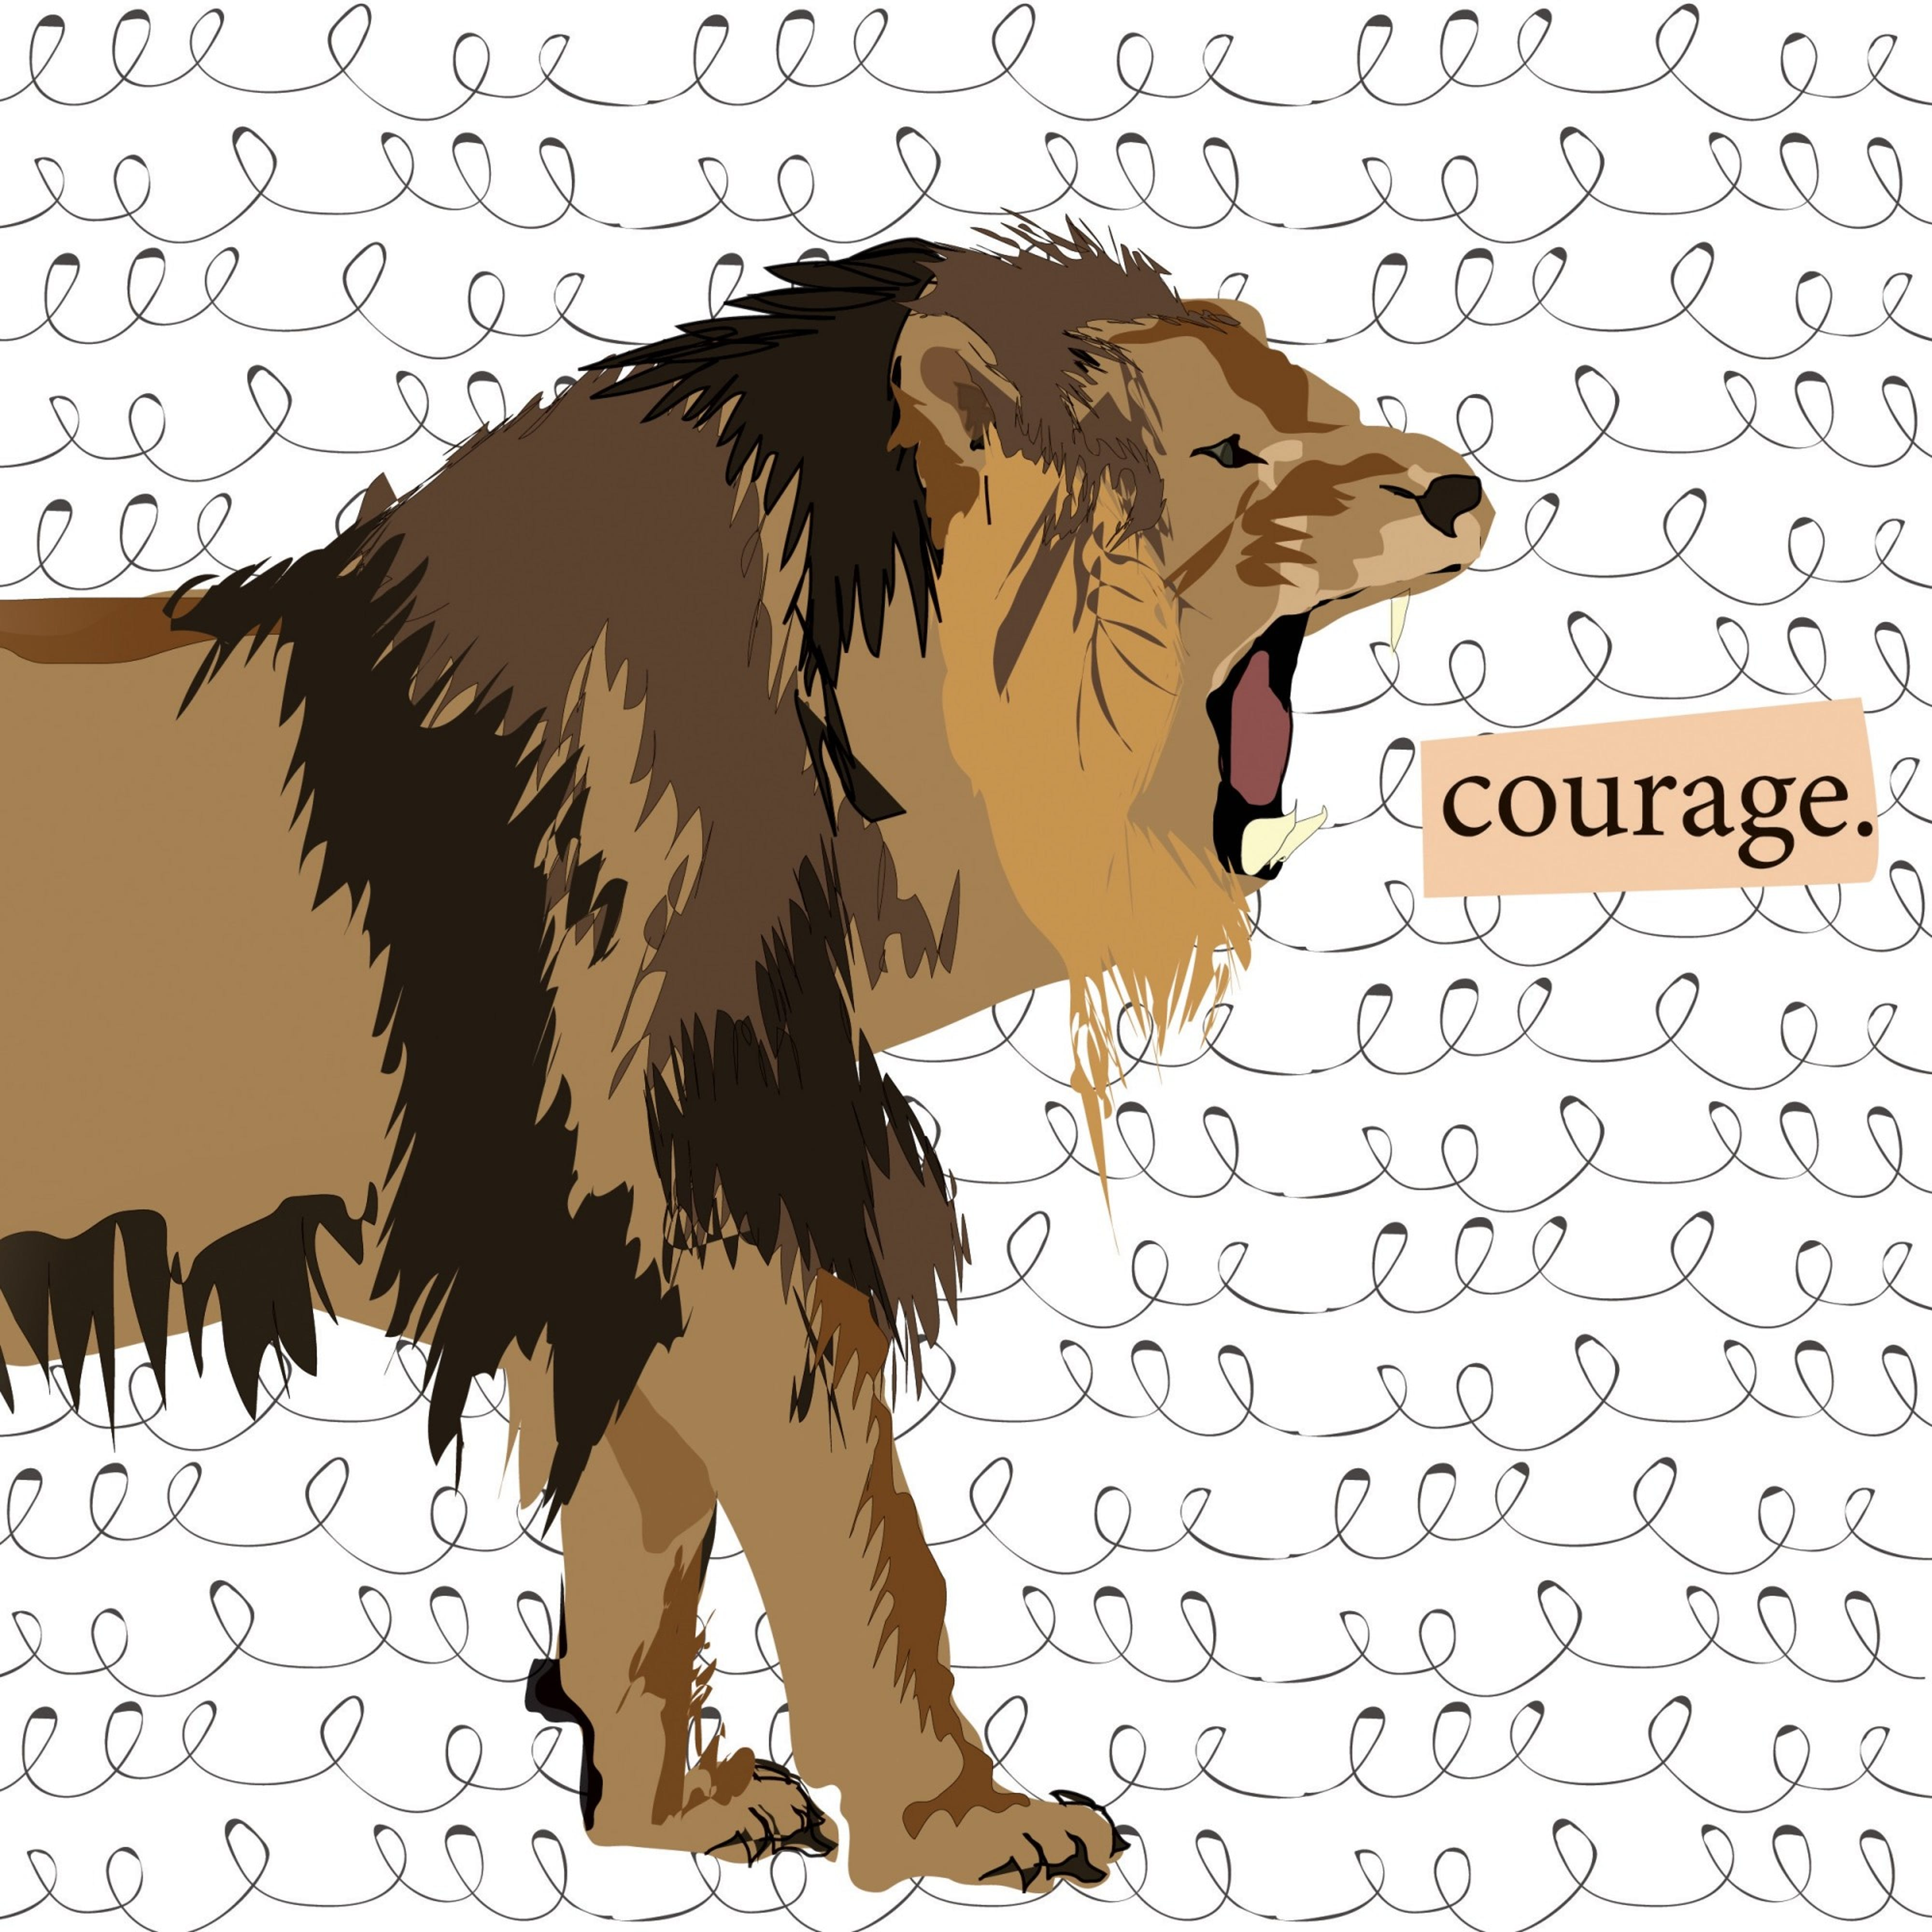 bailey-courage-cover-rgb